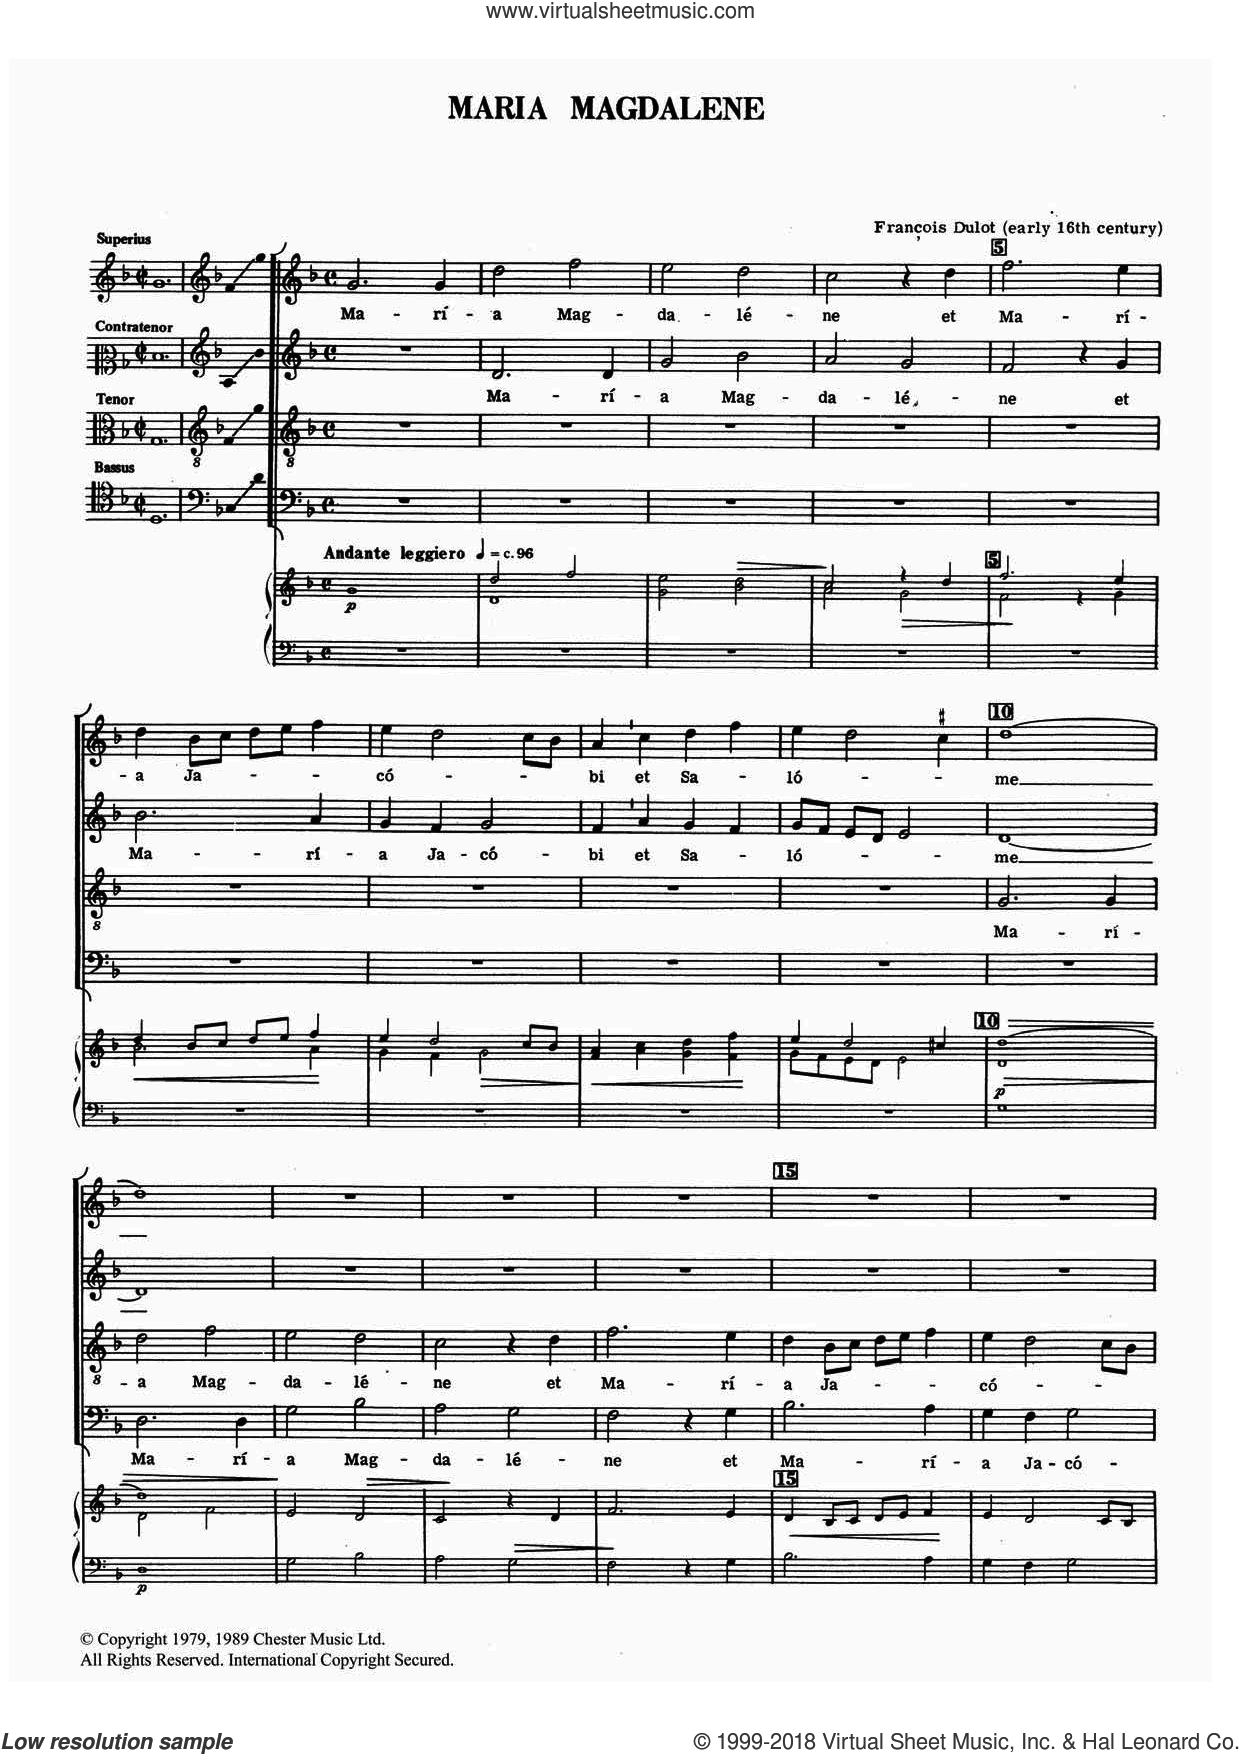 Maria Magdalene sheet music for choir by Francois Dulot, classical score, intermediate skill level